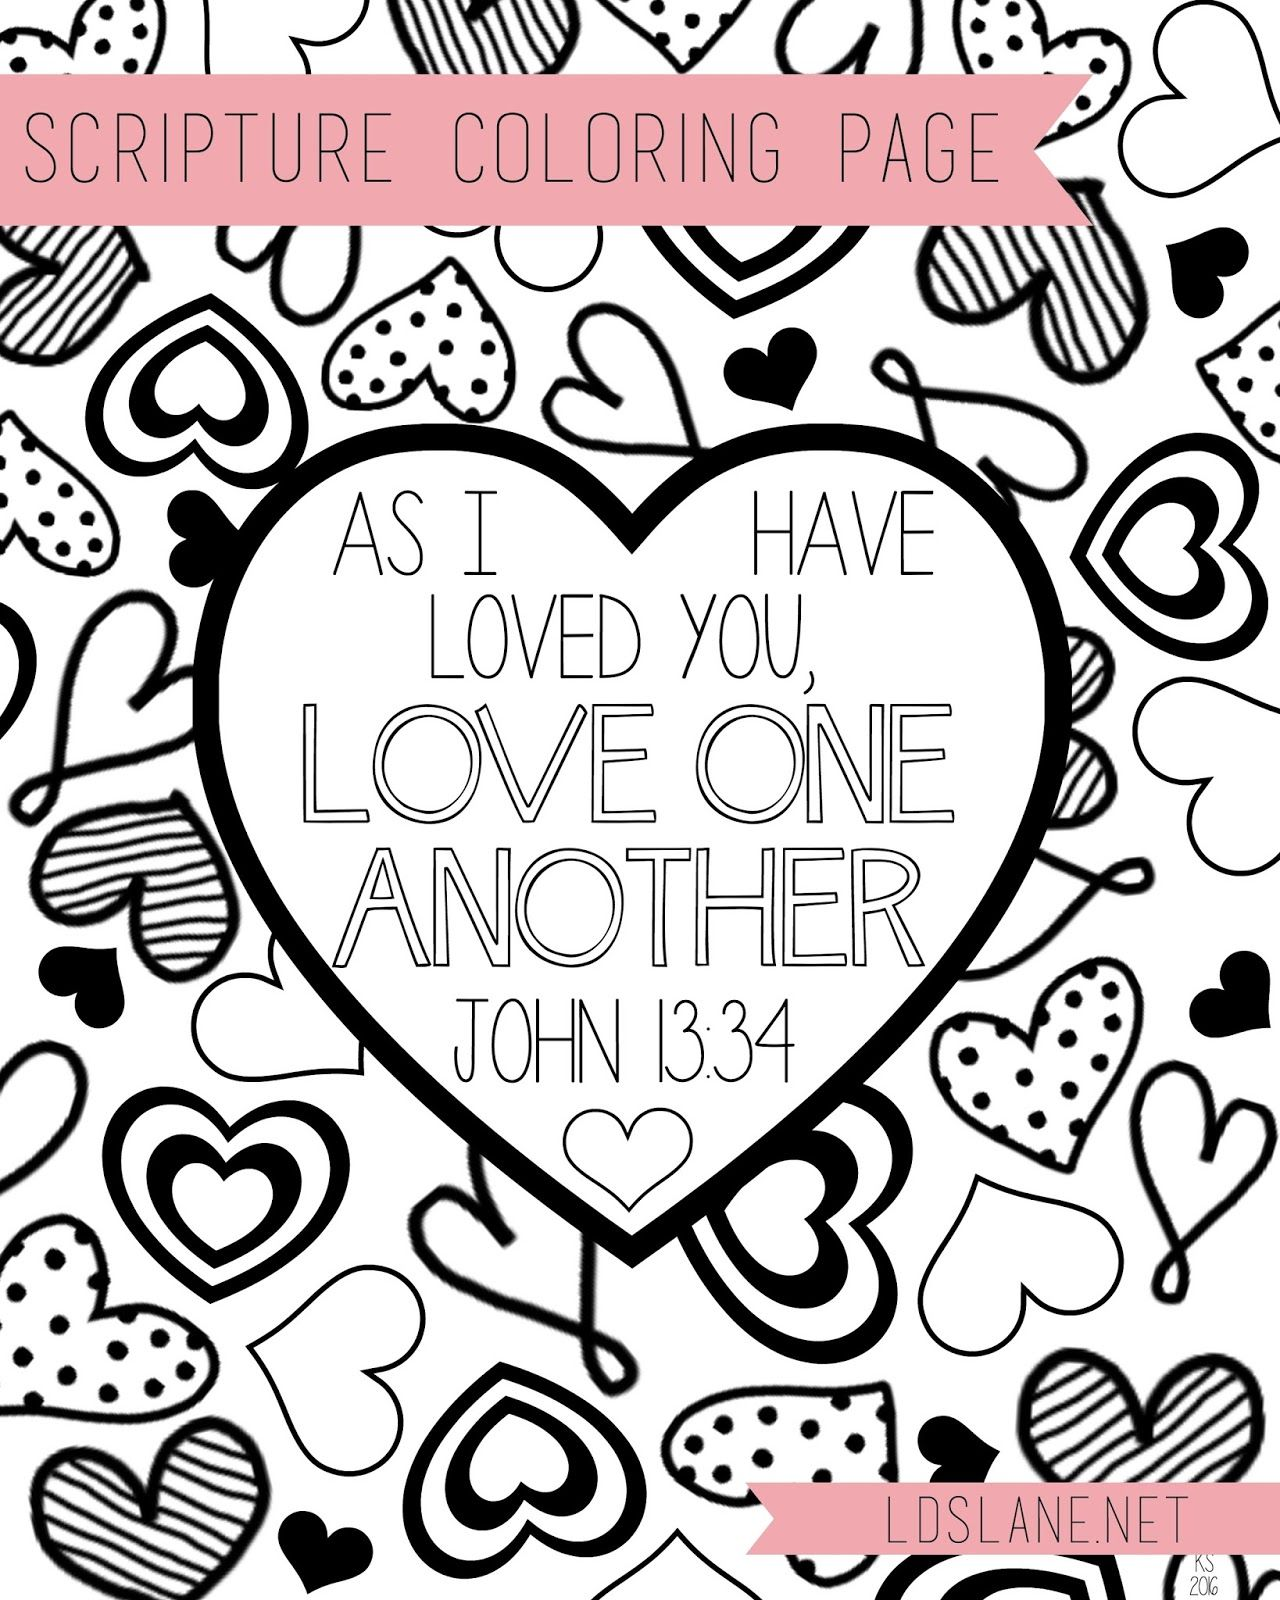 Free coloring pages love - Scripture Coloring Page Love One Another Free Print At Ldslane Net